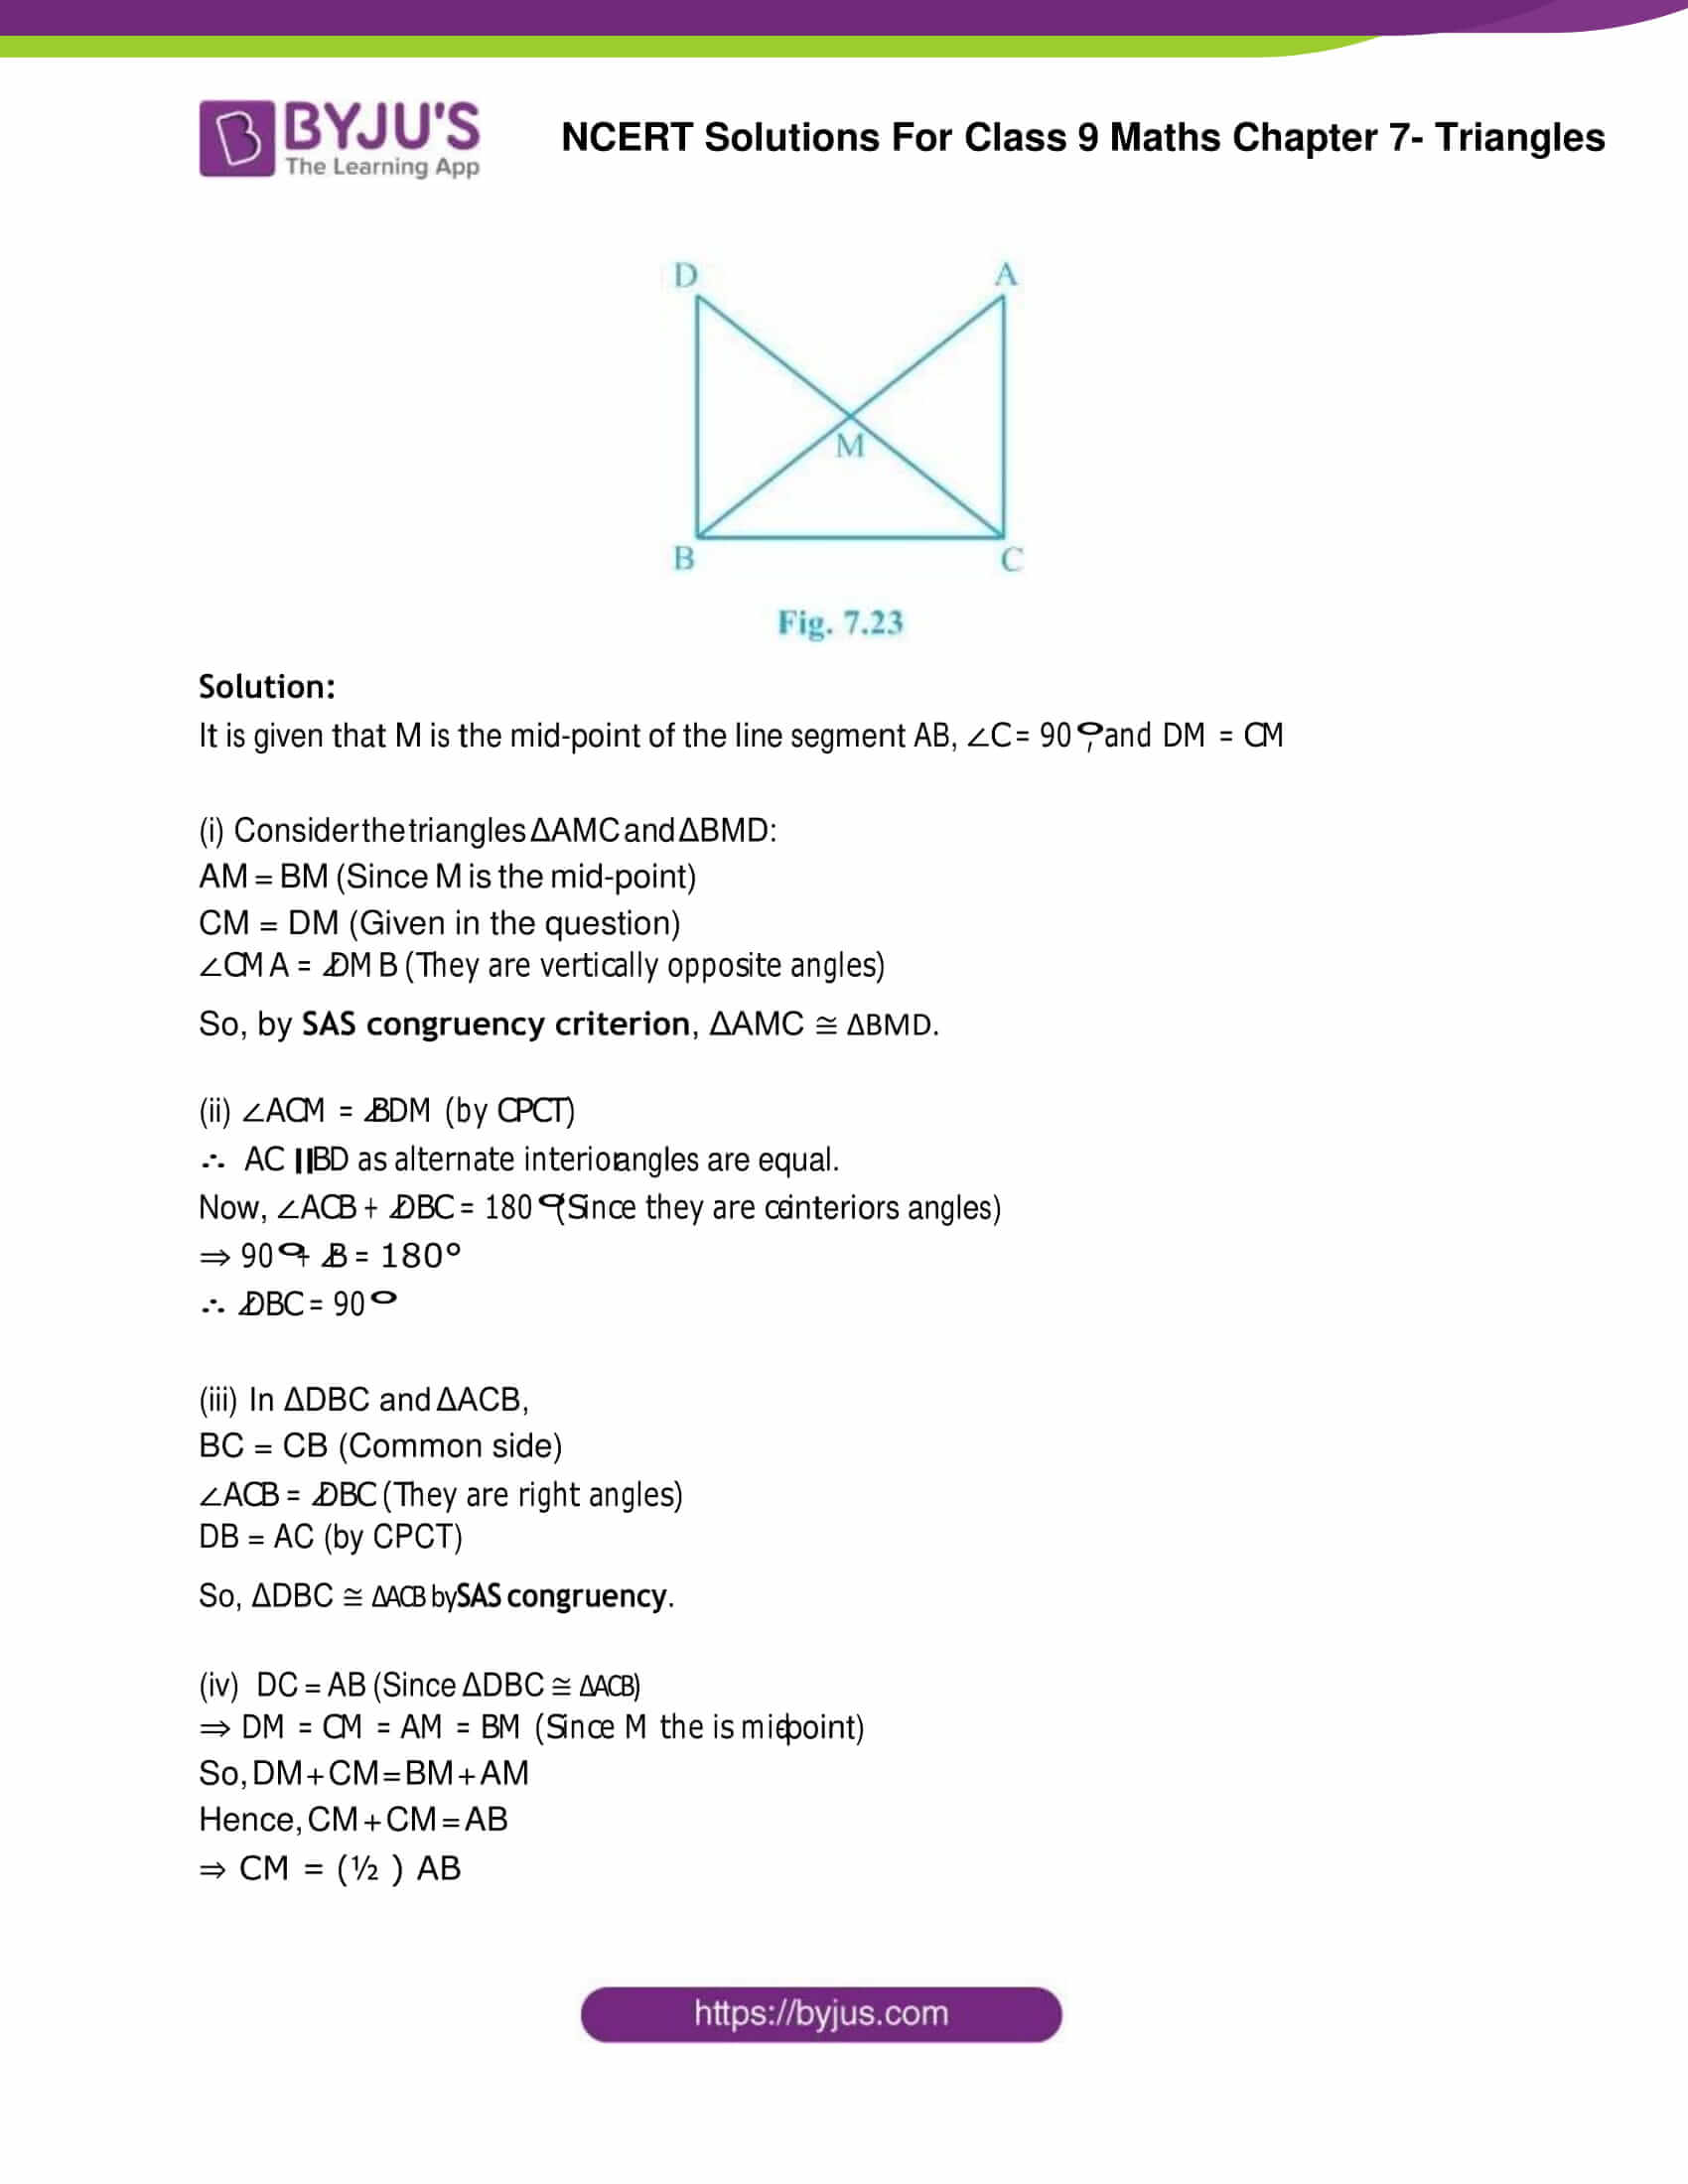 NCERT Solution Class 9 Maths Chapter 7 Triangles Exercise 7.1 Part 6